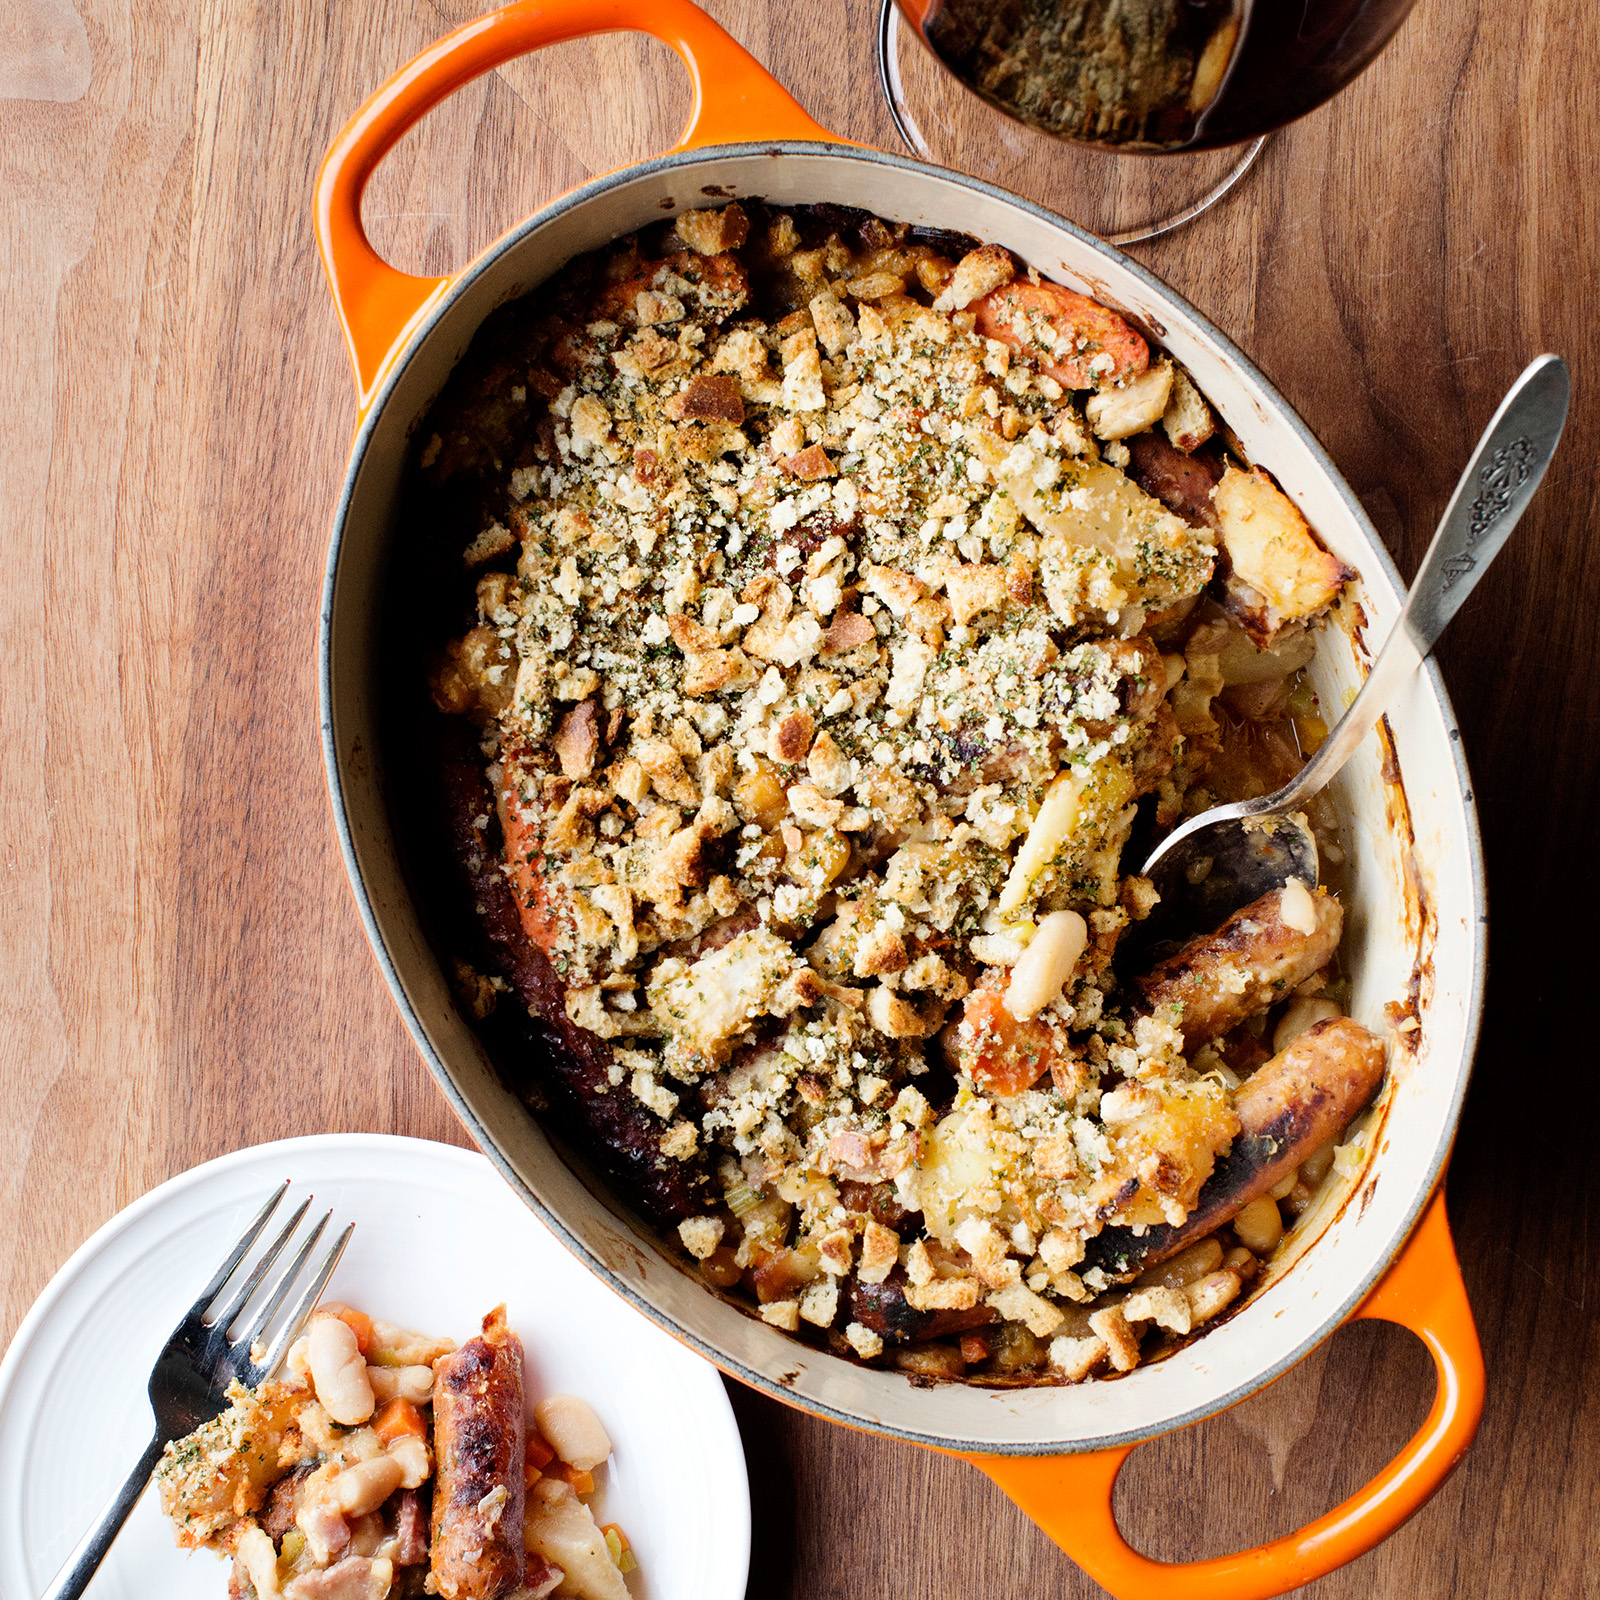 Harissa-Spiced Cassoulet